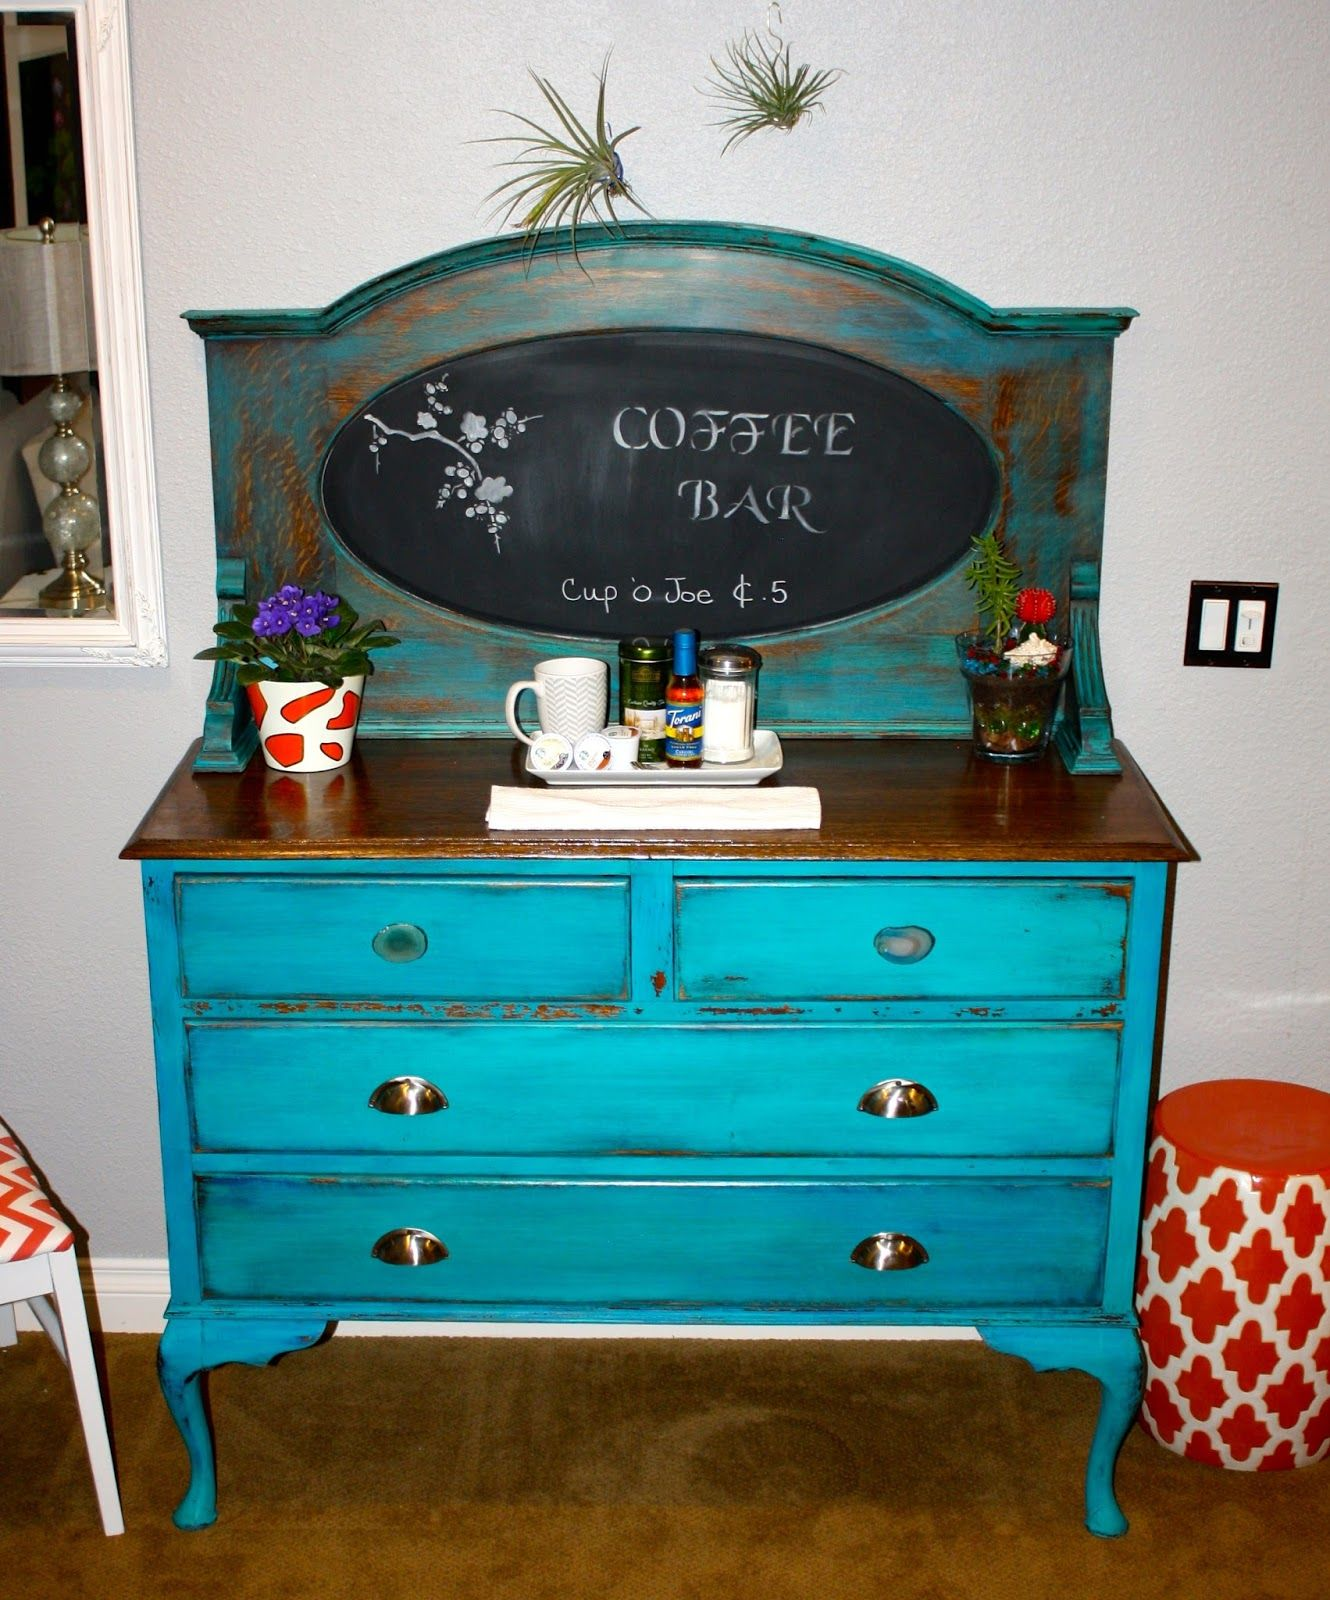 Repurposed an antique buffet into a coffee bar. Turquoise milk paint! - Repurposed An Antique Buffet Into A Coffee Bar. Turquoise Milk Paint